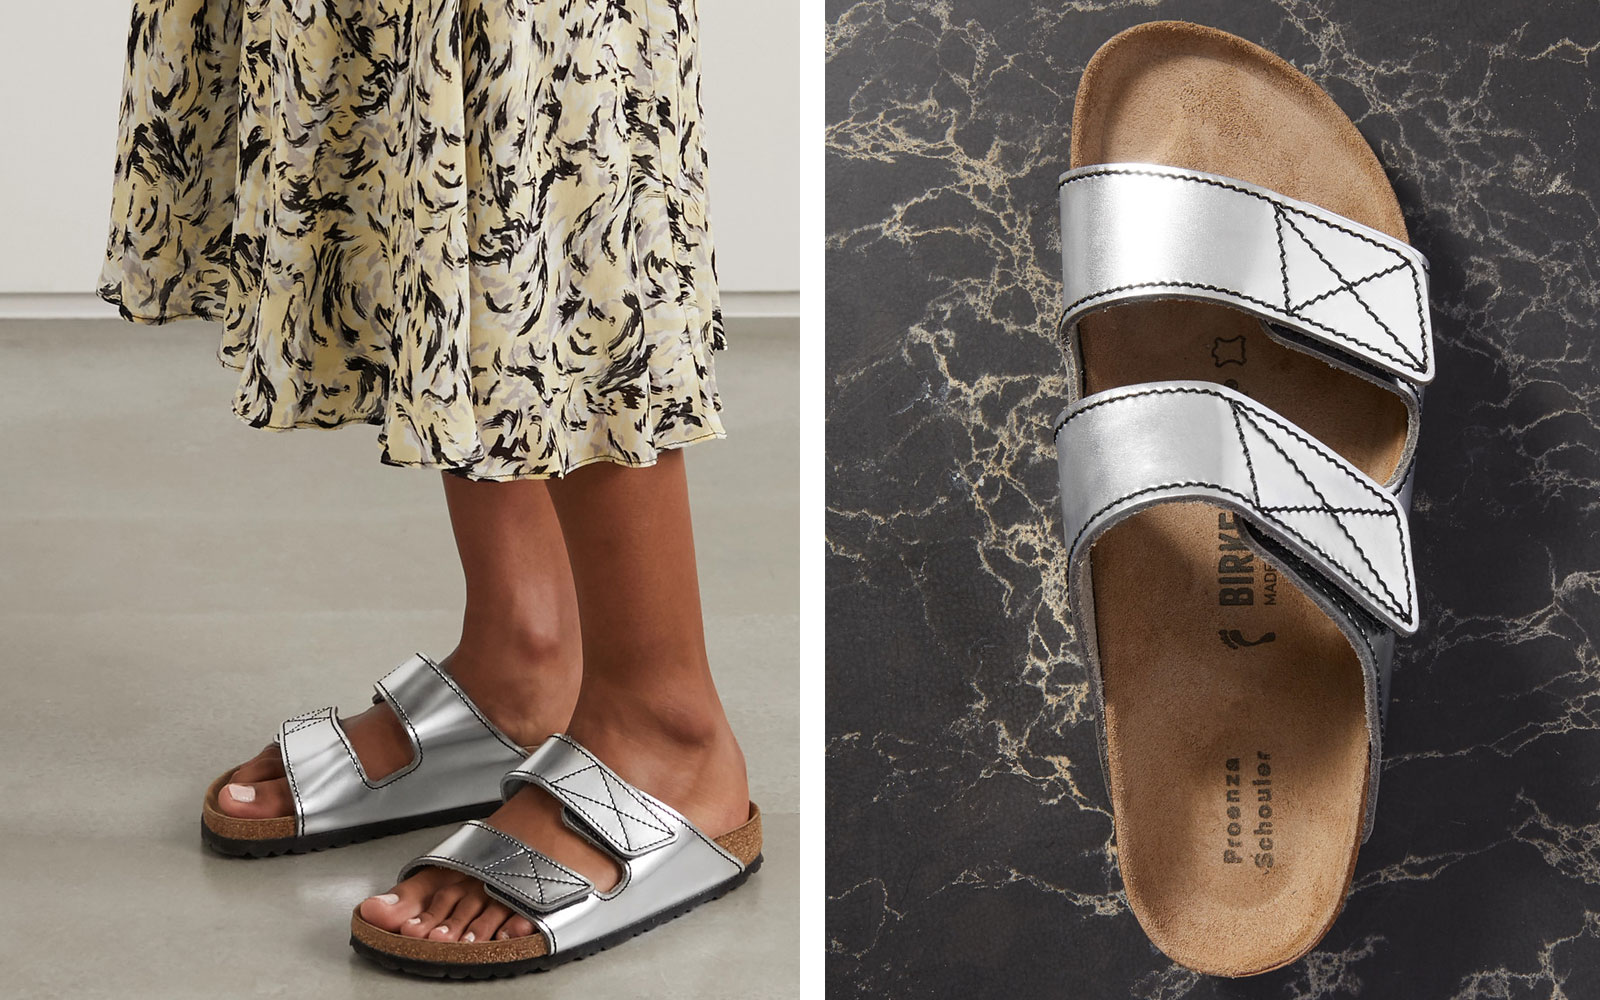 Woman wearing silver leather sandals